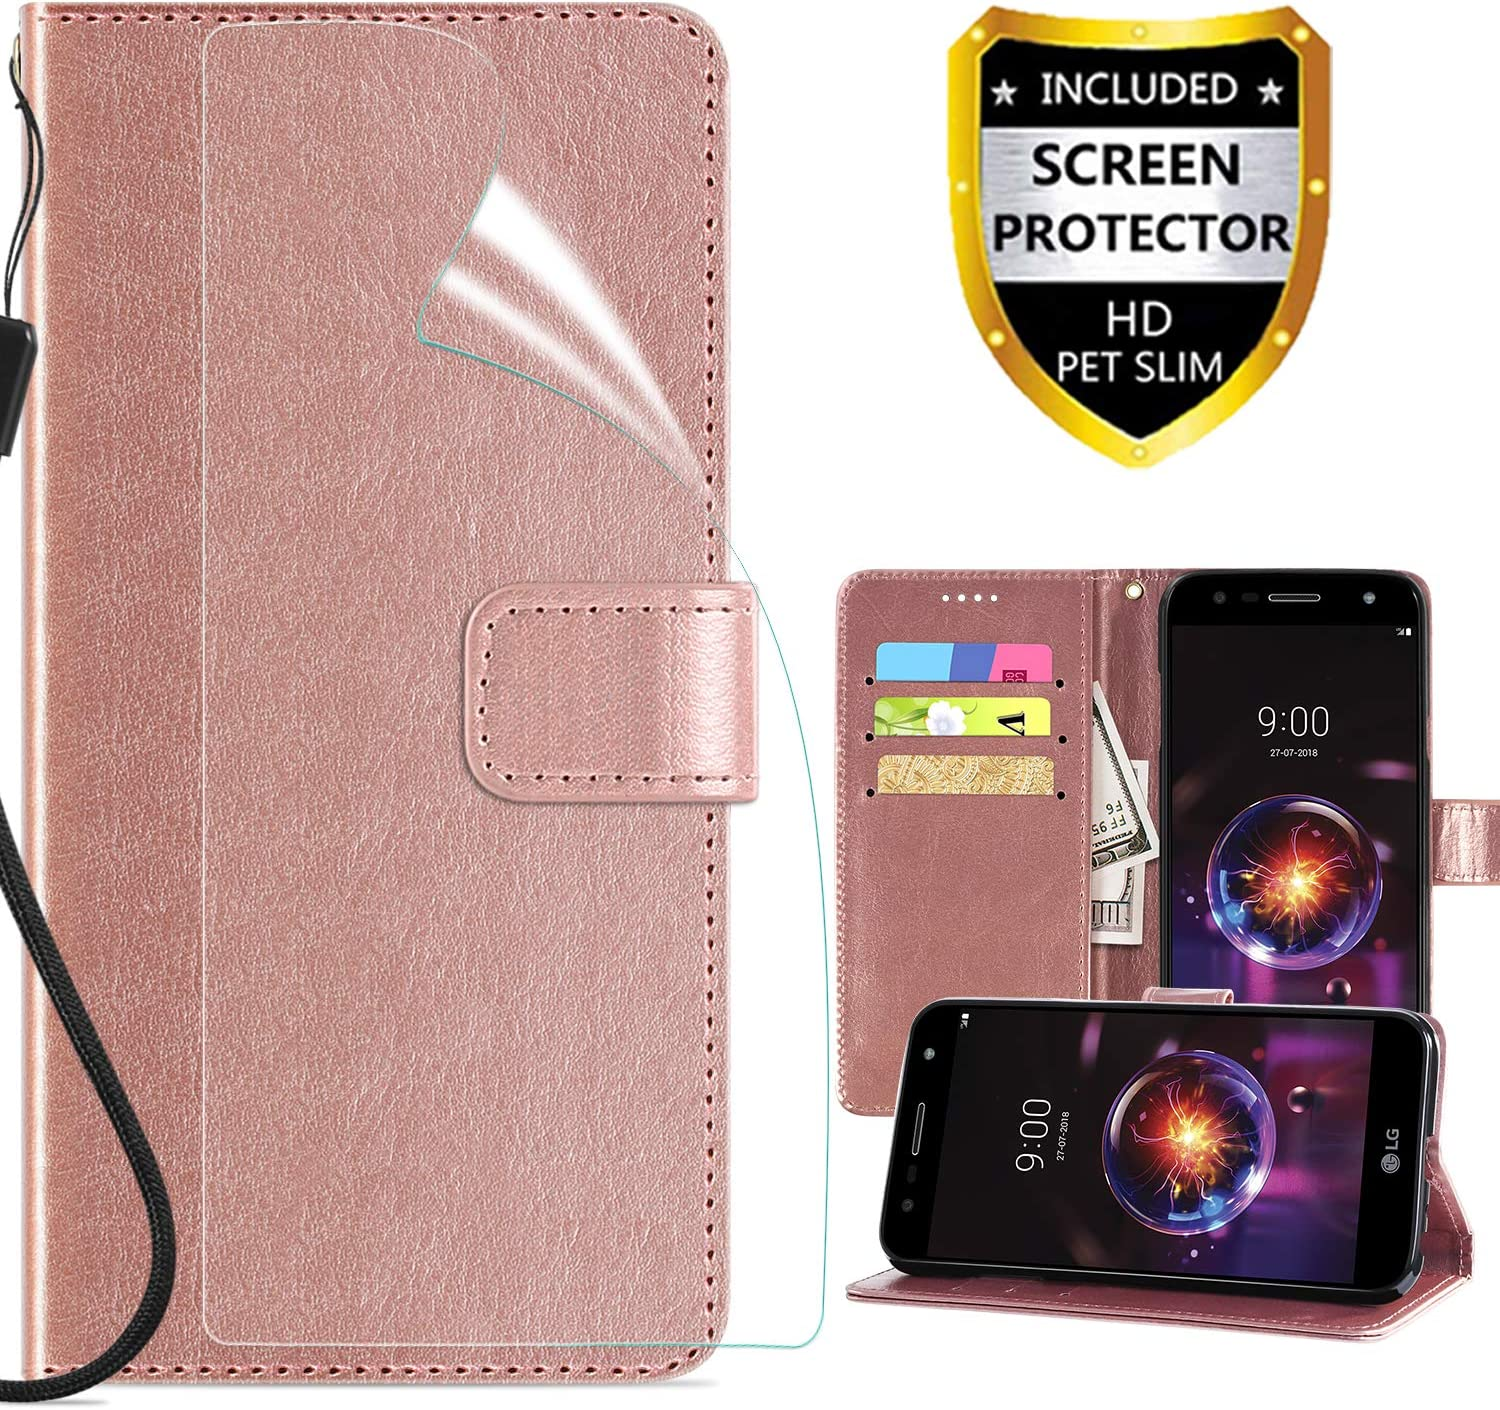 LG X Power 2 Wallet Case,LG X Charge Case,LG Fiesta LTE/Fiesta 2 LTE Case Cover,PU Leather Built-in Card Slots Flip Magnetic Cover w/Kickstand/Straps/Screen Protector for Girls Women,Rose Gold